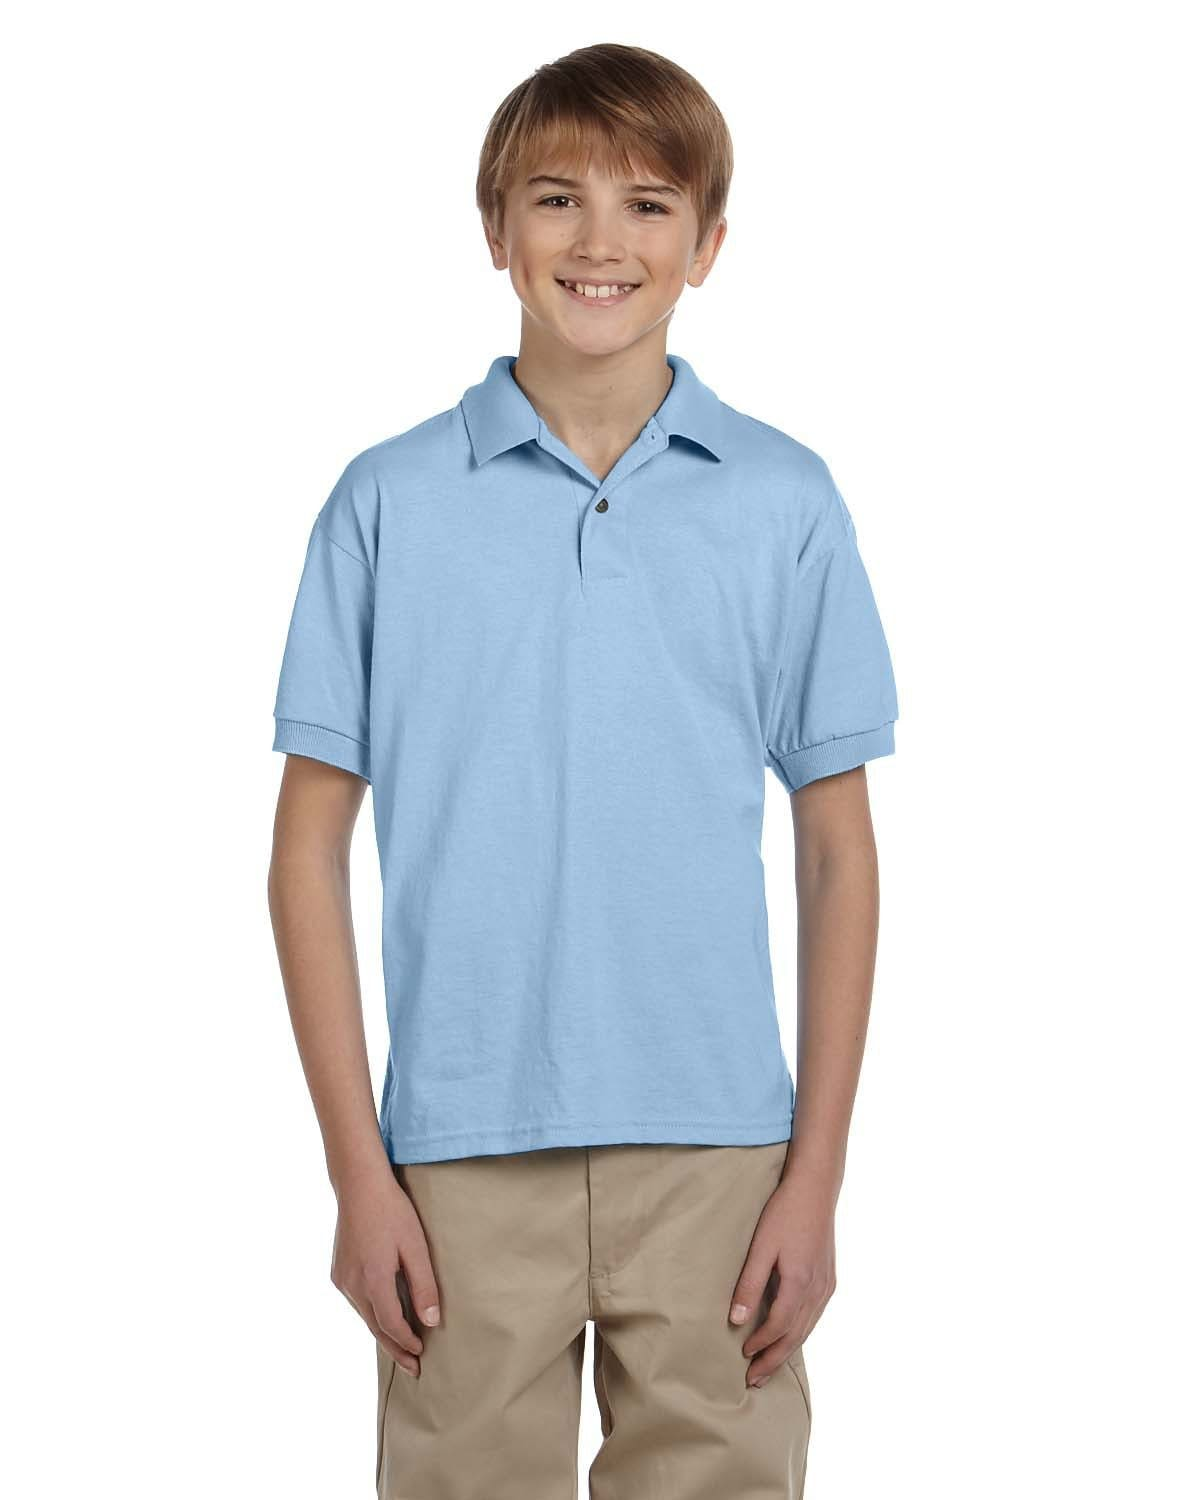 g880b-youth-6-oz-50-50-jersey-polo-Small-ASH GREY-Oasispromos